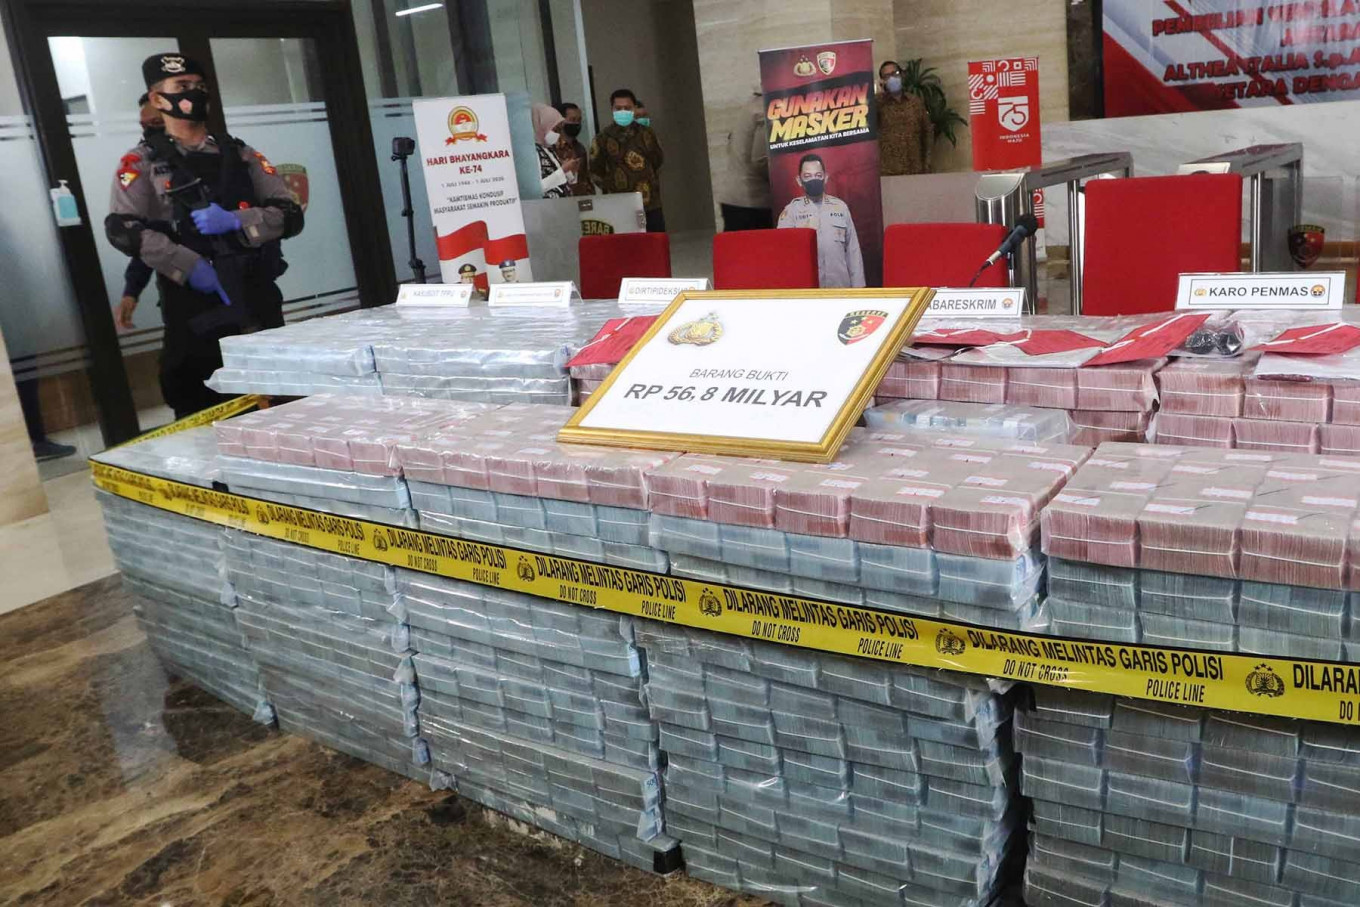 Police officers guard stacks of cash totaling Rp 56.8 billion that were seized as  evidence in a fraud case involving the purchase of ventilators at the National Police Headquarters in Jakarta, Sept. 7, 2020. Bareskrim head Comr. Gen. Listyo Sigit Prabowo said a syndicate had stolen money transferred under a contract of sale between two foreign healthcare technology firms: Althea Group from Italy and Shenzhen Mindray Bio-Medical Electronics from China. JP/Dhoni Setiawan